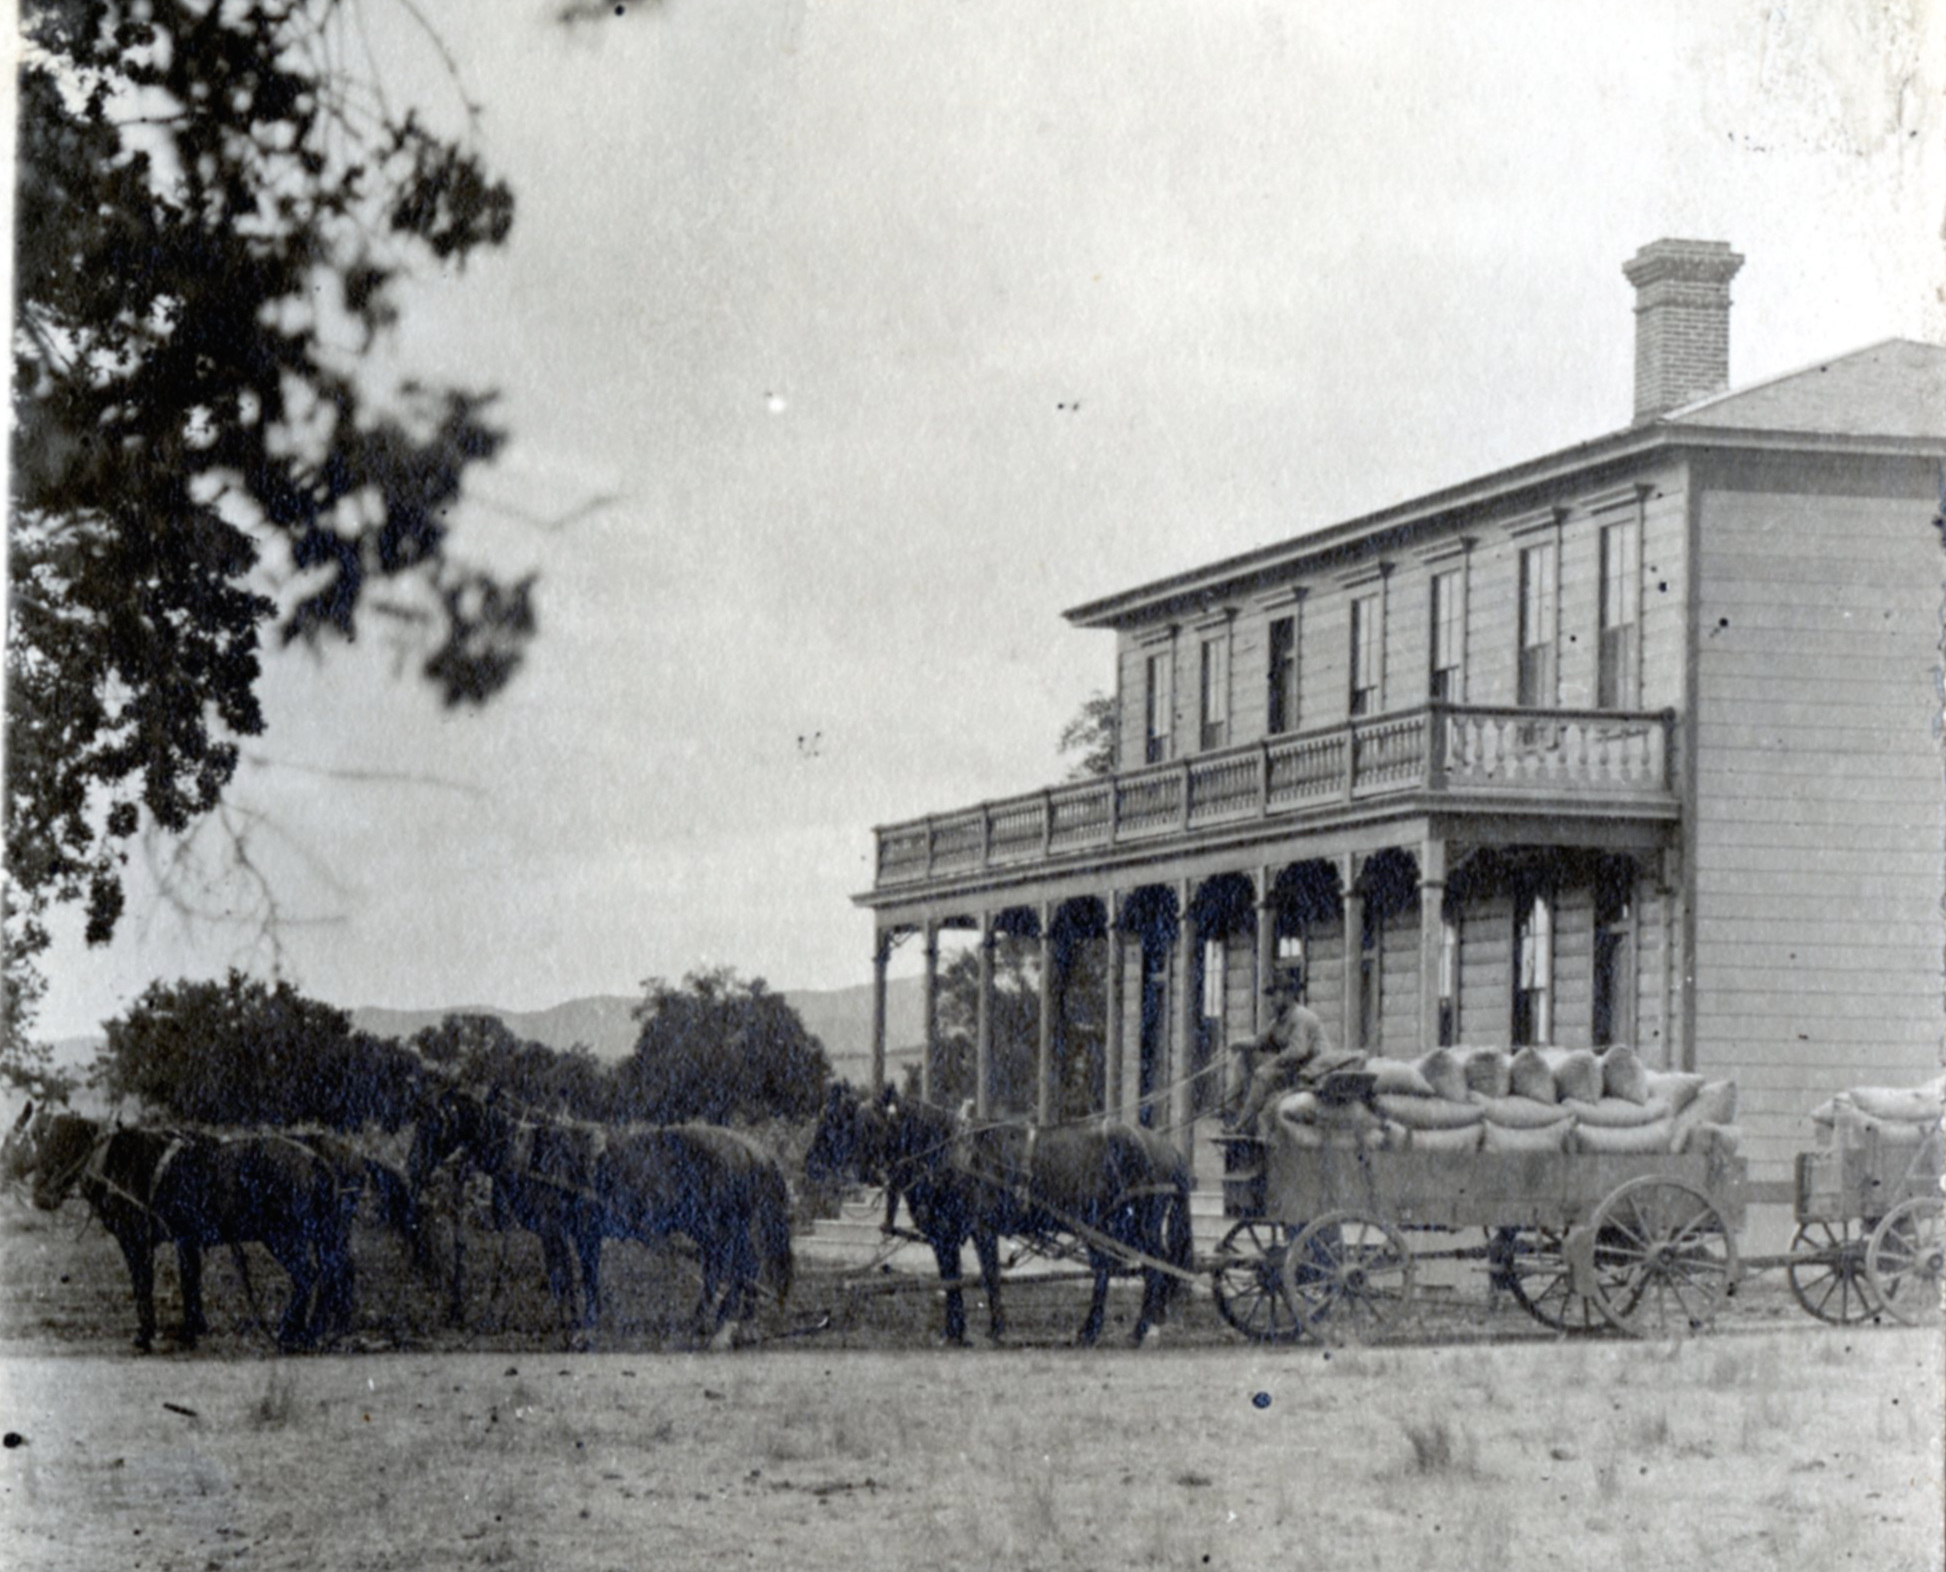 The Conejo Hotel (later known as the Stagecoach Inn) in 1890